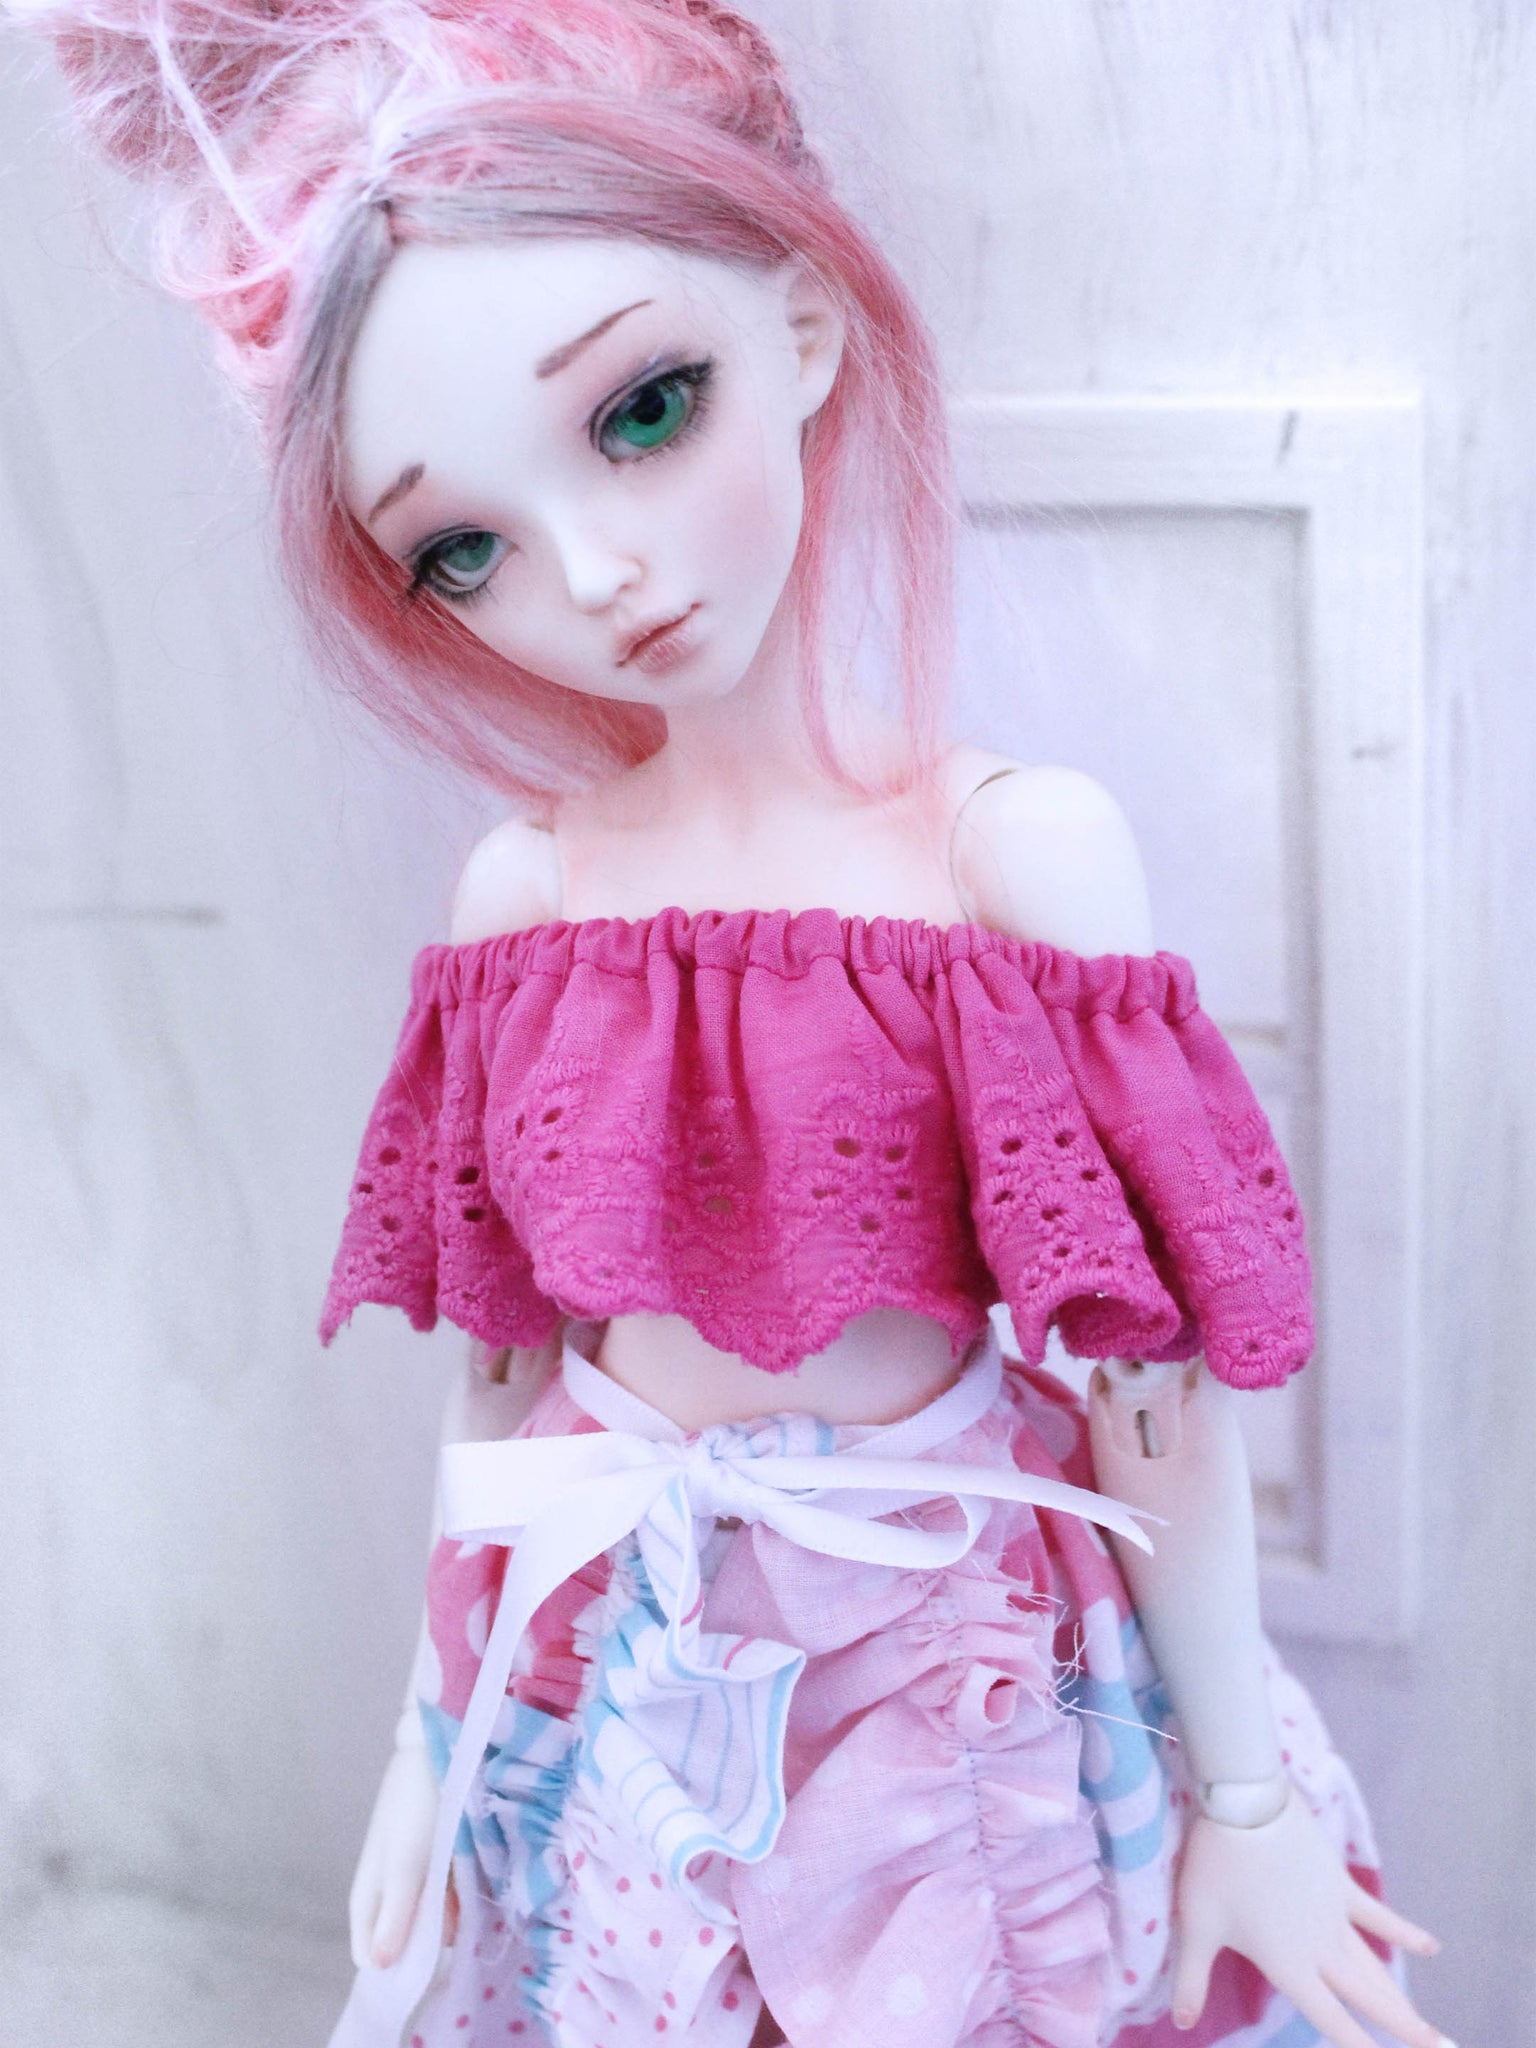 Pink ruffle crop top for mini super dollfie - Monstro Designs